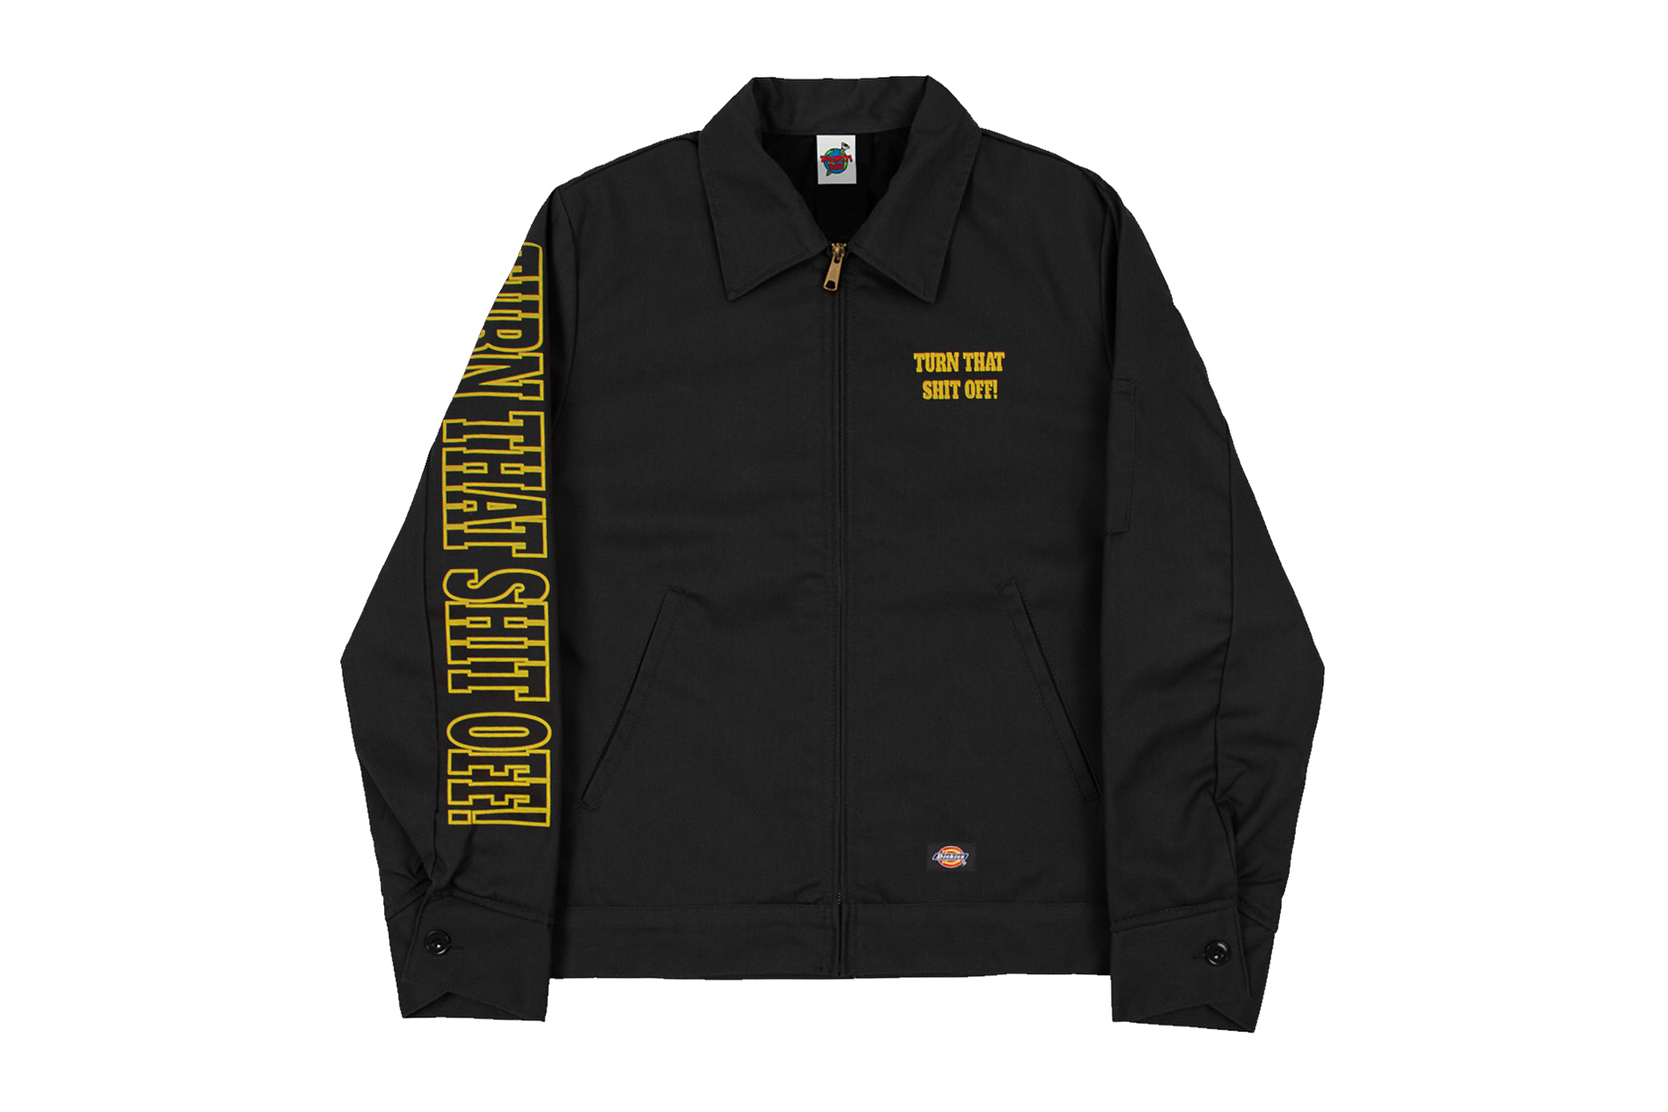 spaghetti boys TURN THAT SHiT OFF capsule collection earplugs champion sweat shorts hoodie dickes work jacket coverall tee shirt print graphic drop release buy purchase black